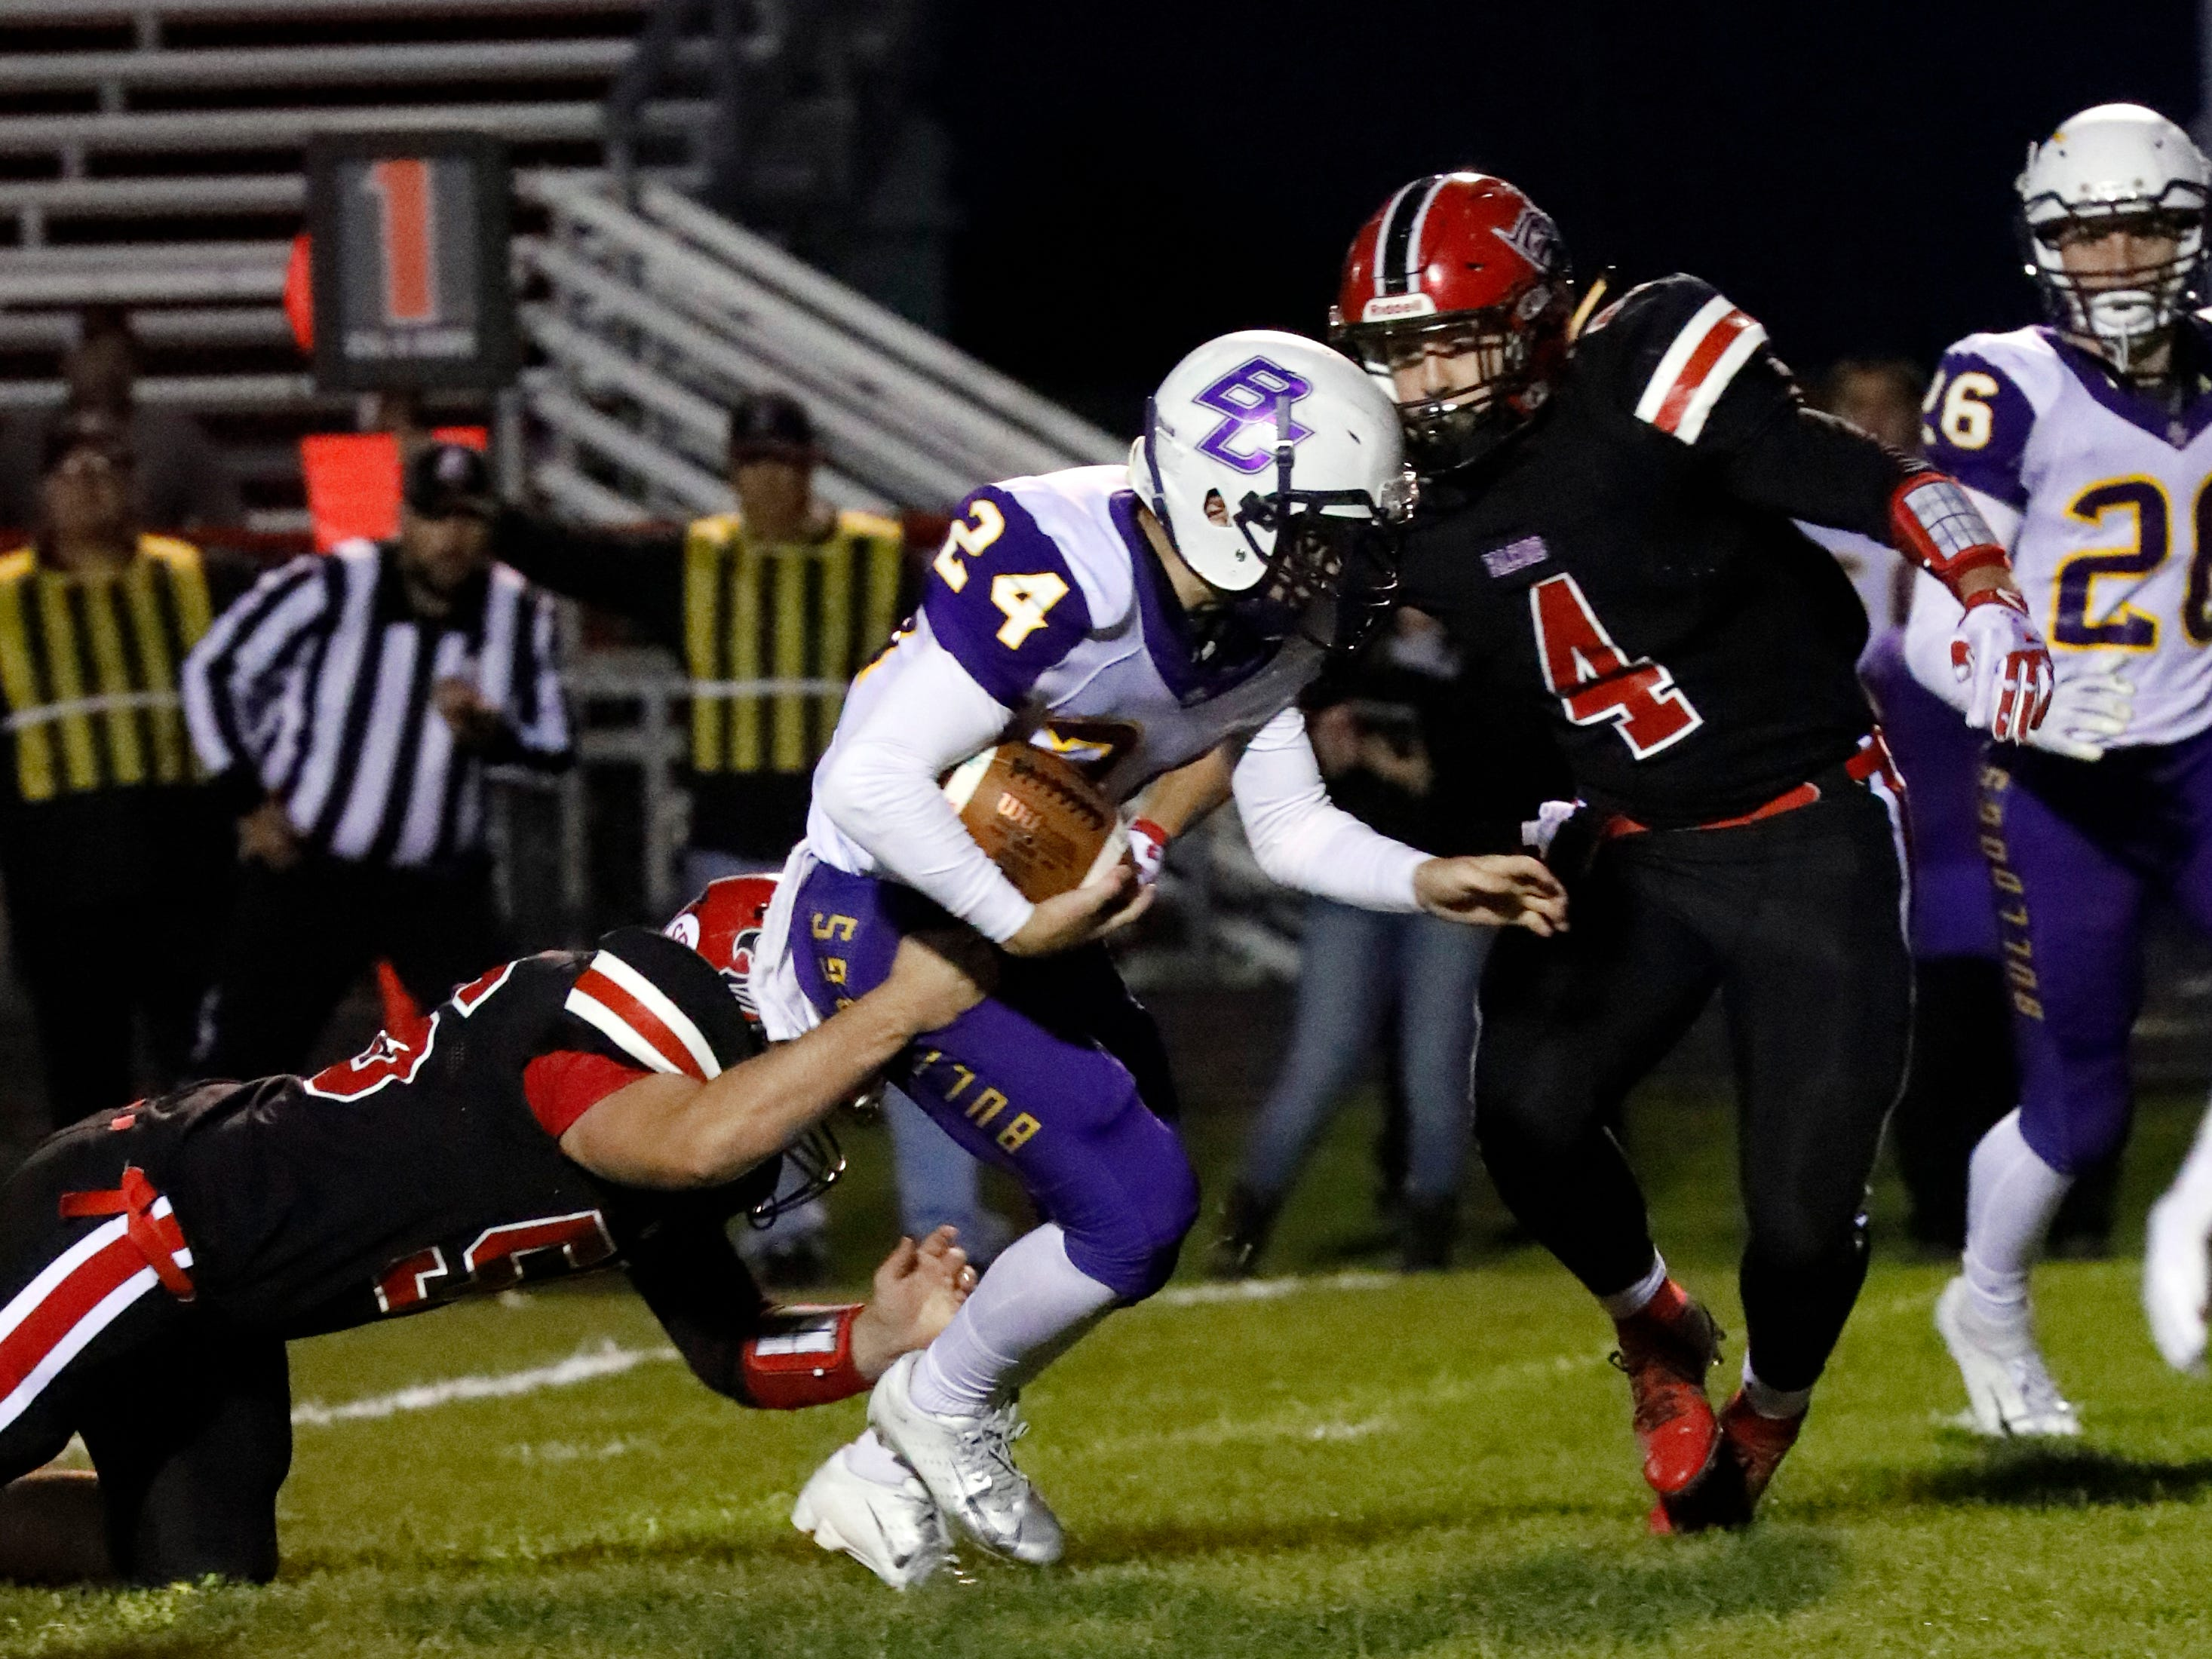 Bloom-Carroll's Evan Willet is tackled by Fairfield Union's Robert Wyeth and Johnny LaRock during Friday night's game, Oct. 19, 2018, at Fairfield Union High School in Rushville. The Bulldogs defeated the Falcons 44-7.